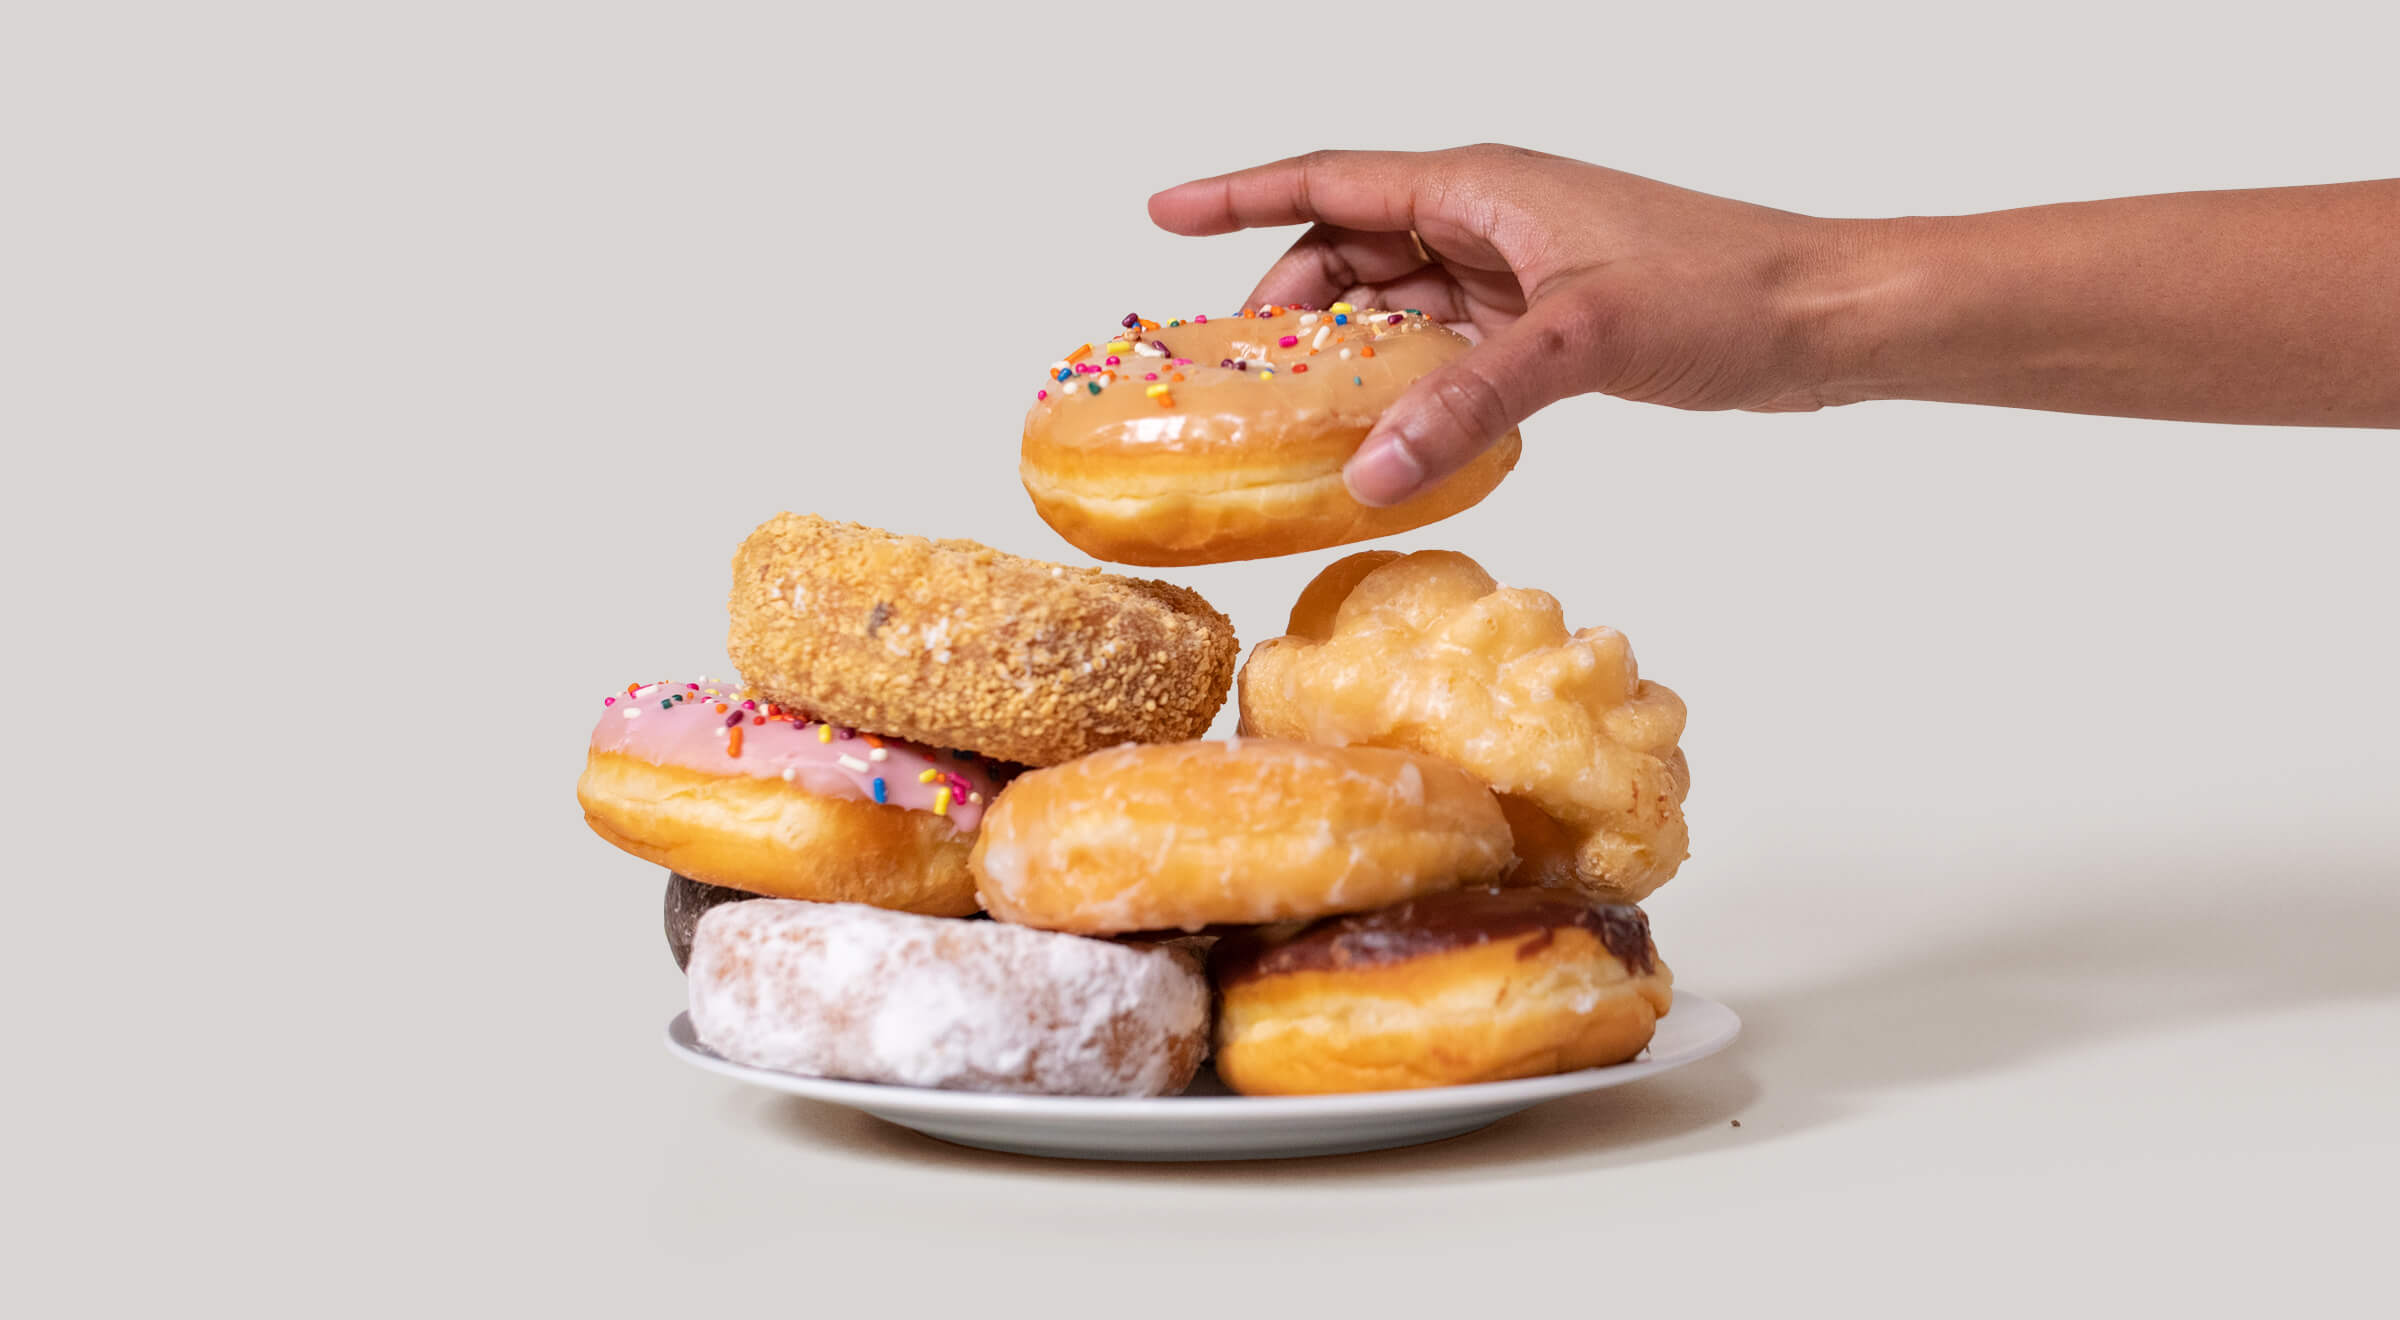 Hand reaching for a pile of assorted donuts